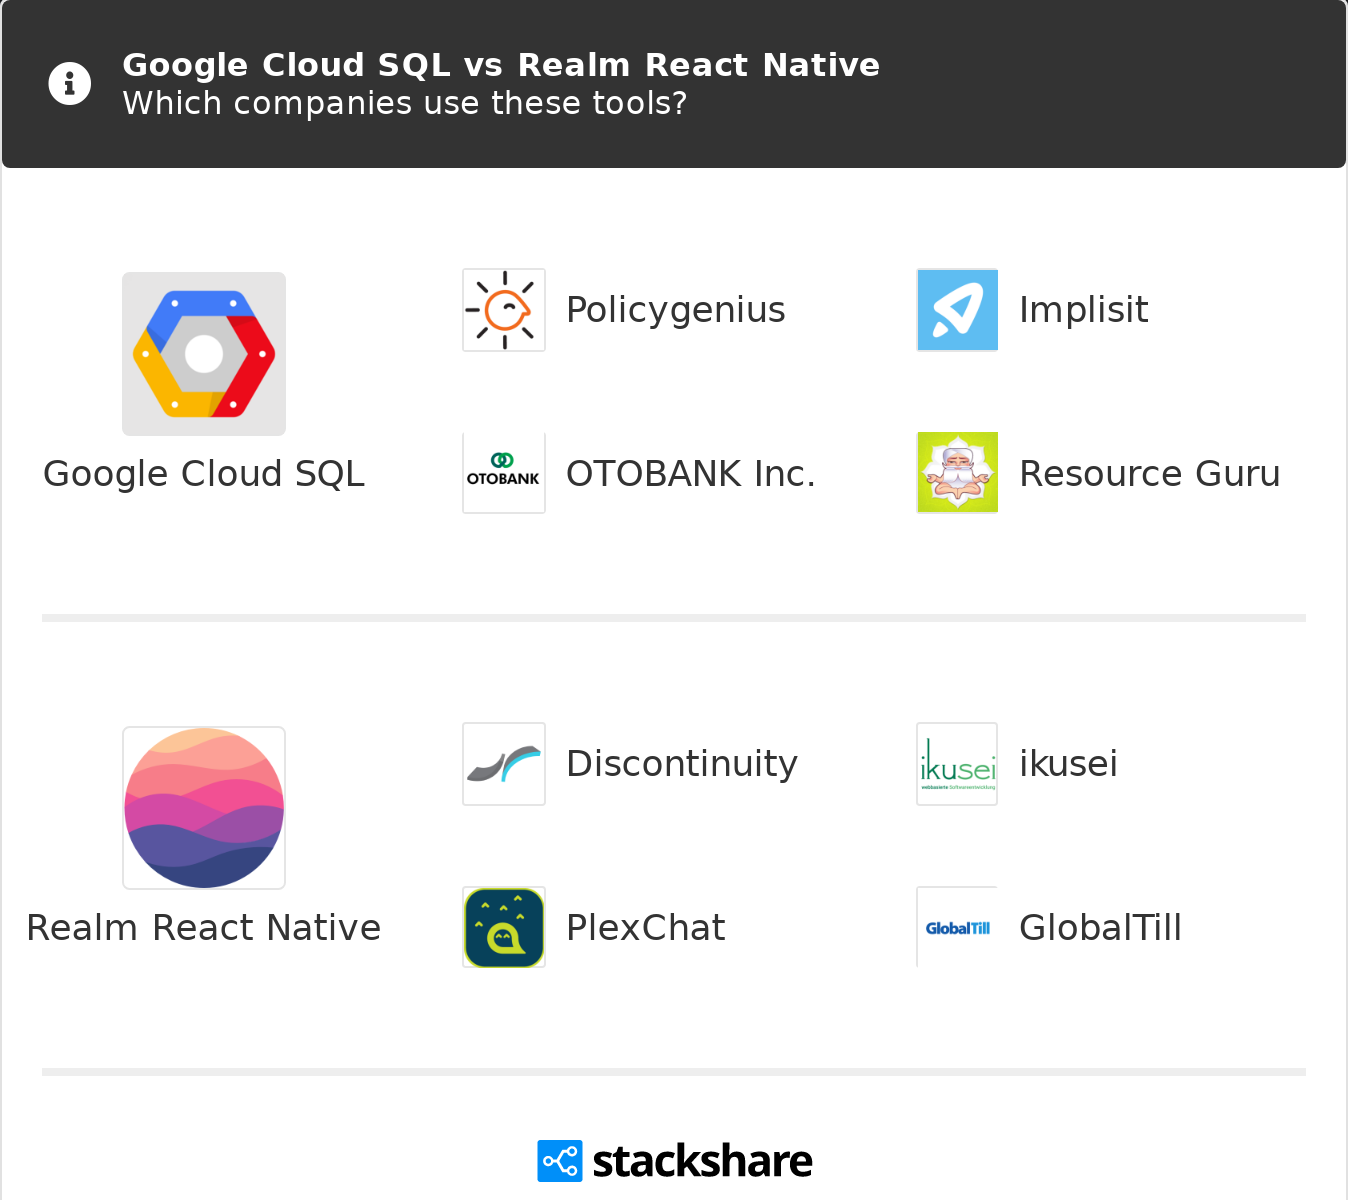 Google Cloud SQL vs Realm React Native | What are the